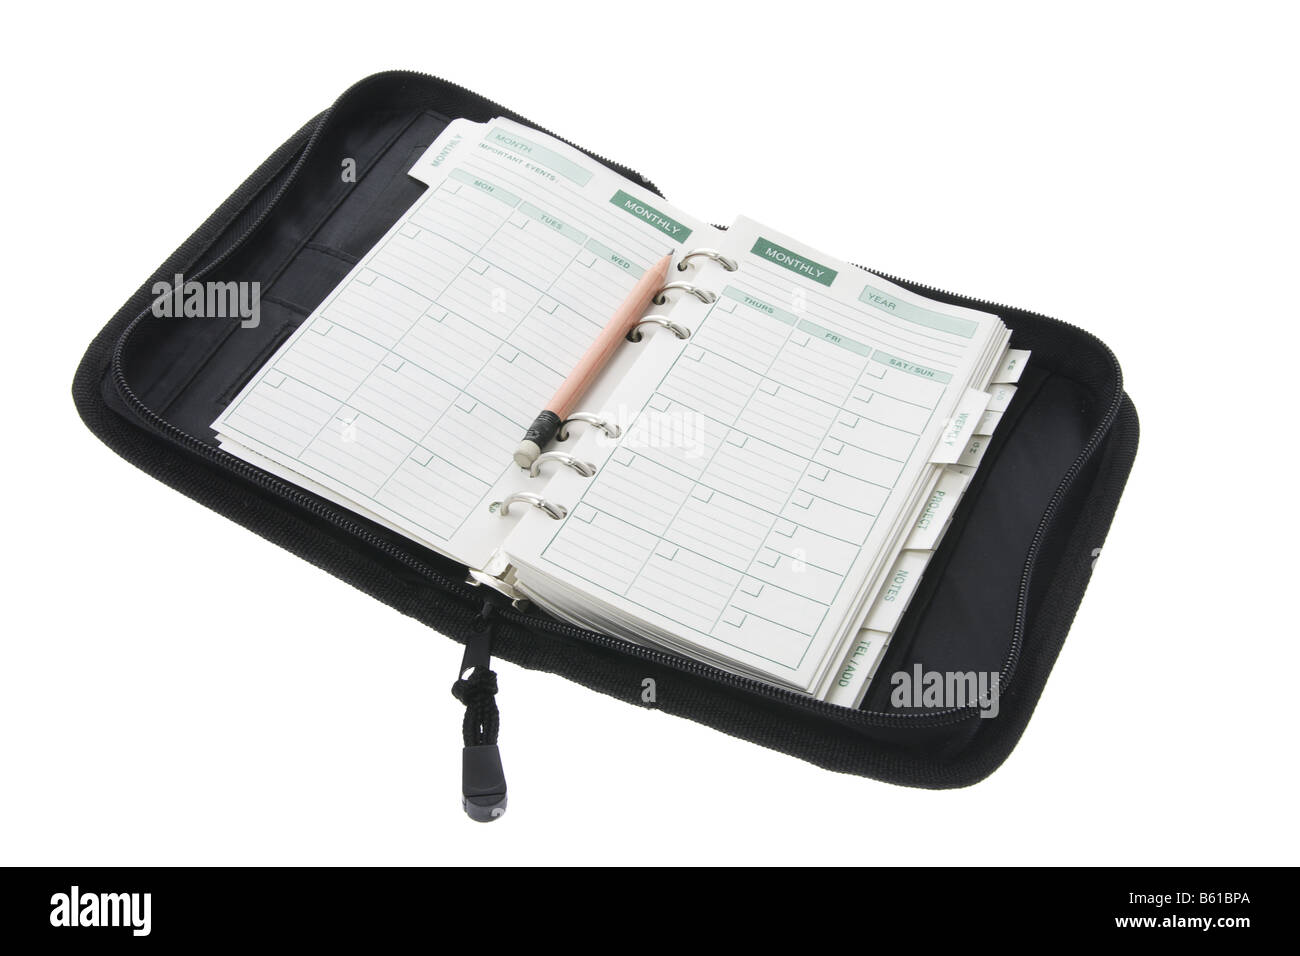 Pocket Organizer and Pencil - Stock Image